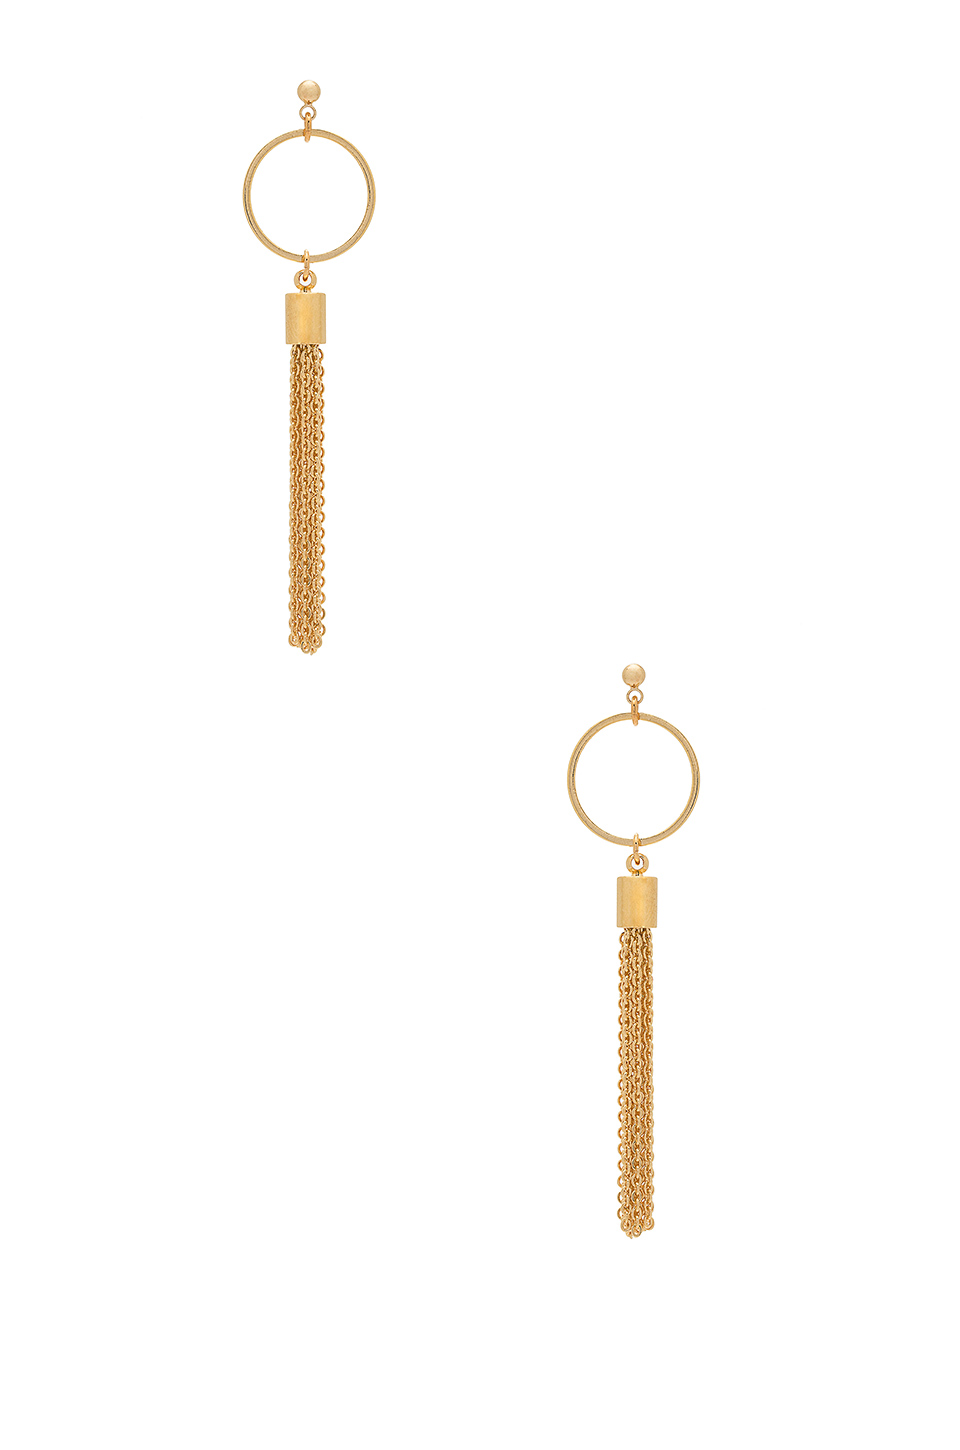 FIVE AND TWO 'DEVON' EARRINGS